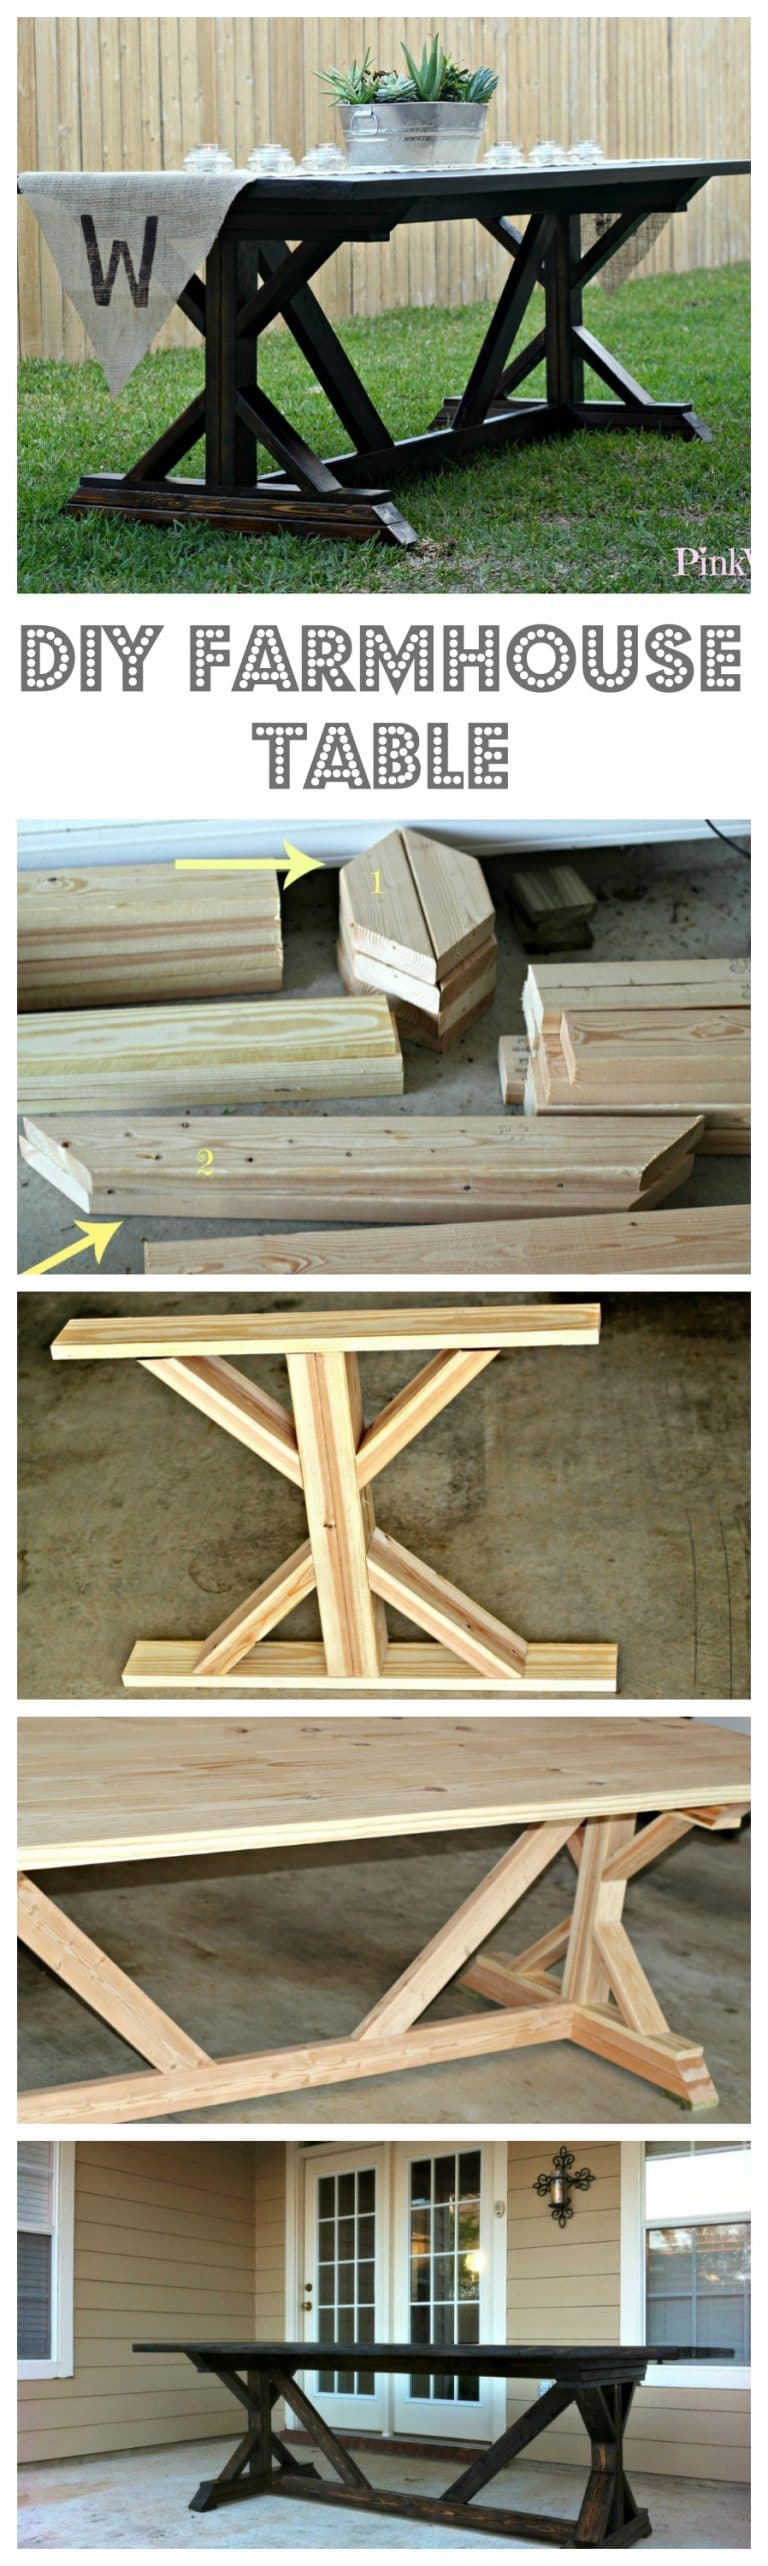 Building Farmhouse Table